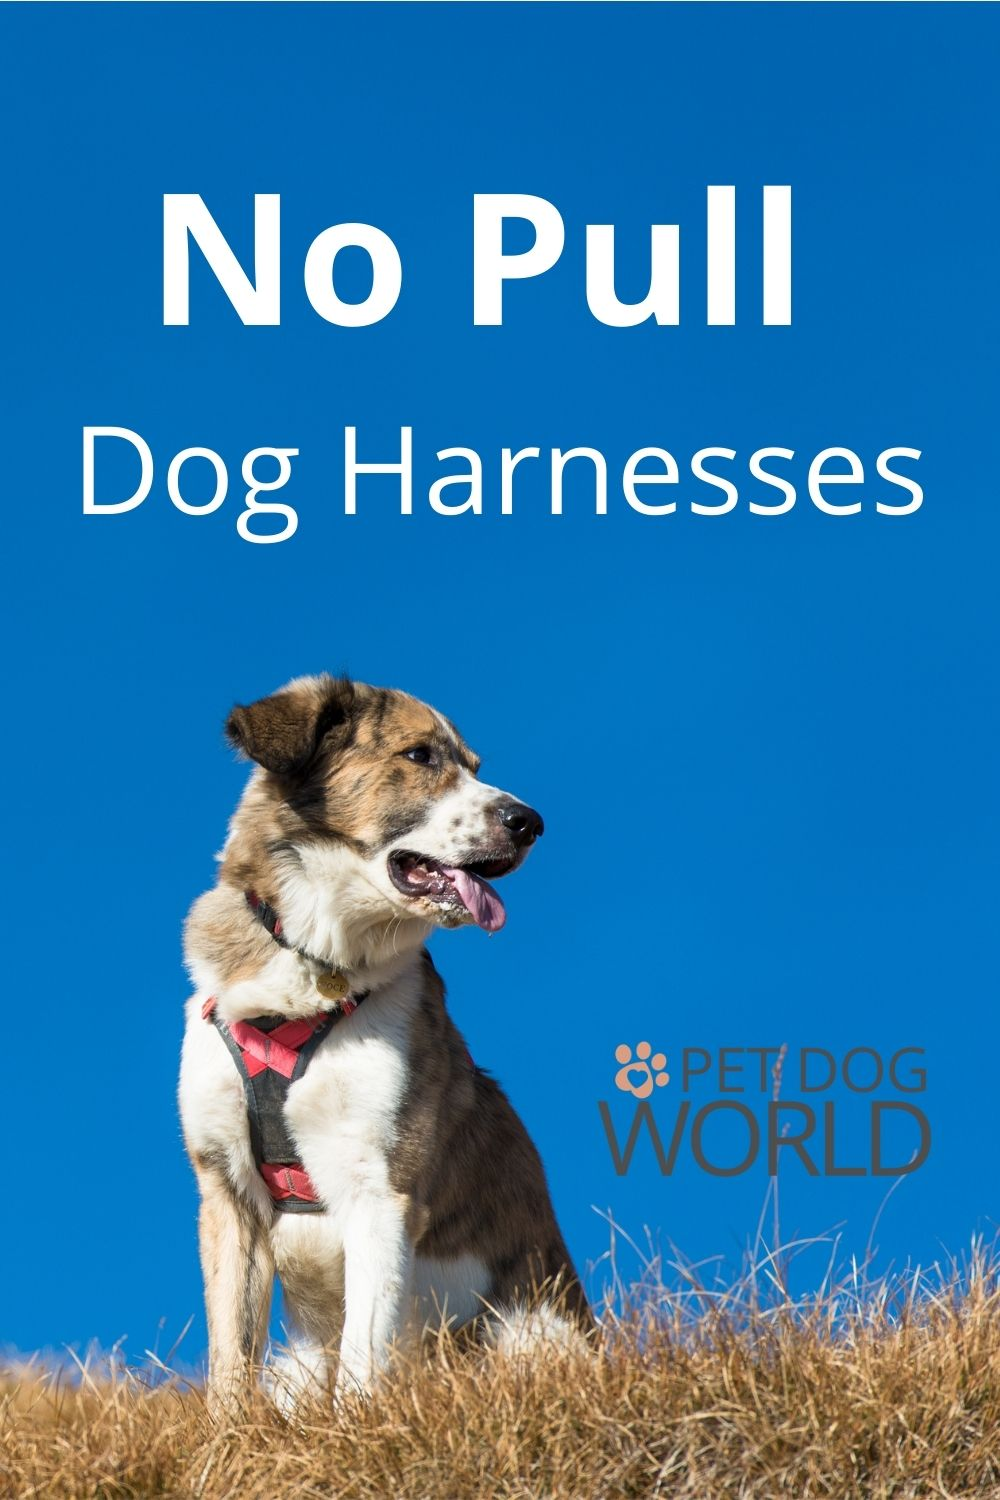 If your dog pulls on the lead, conventional collars can hurt your dog's neck. The answer is to invest in a no pull dog harness for a more pleasurable and safer walk.